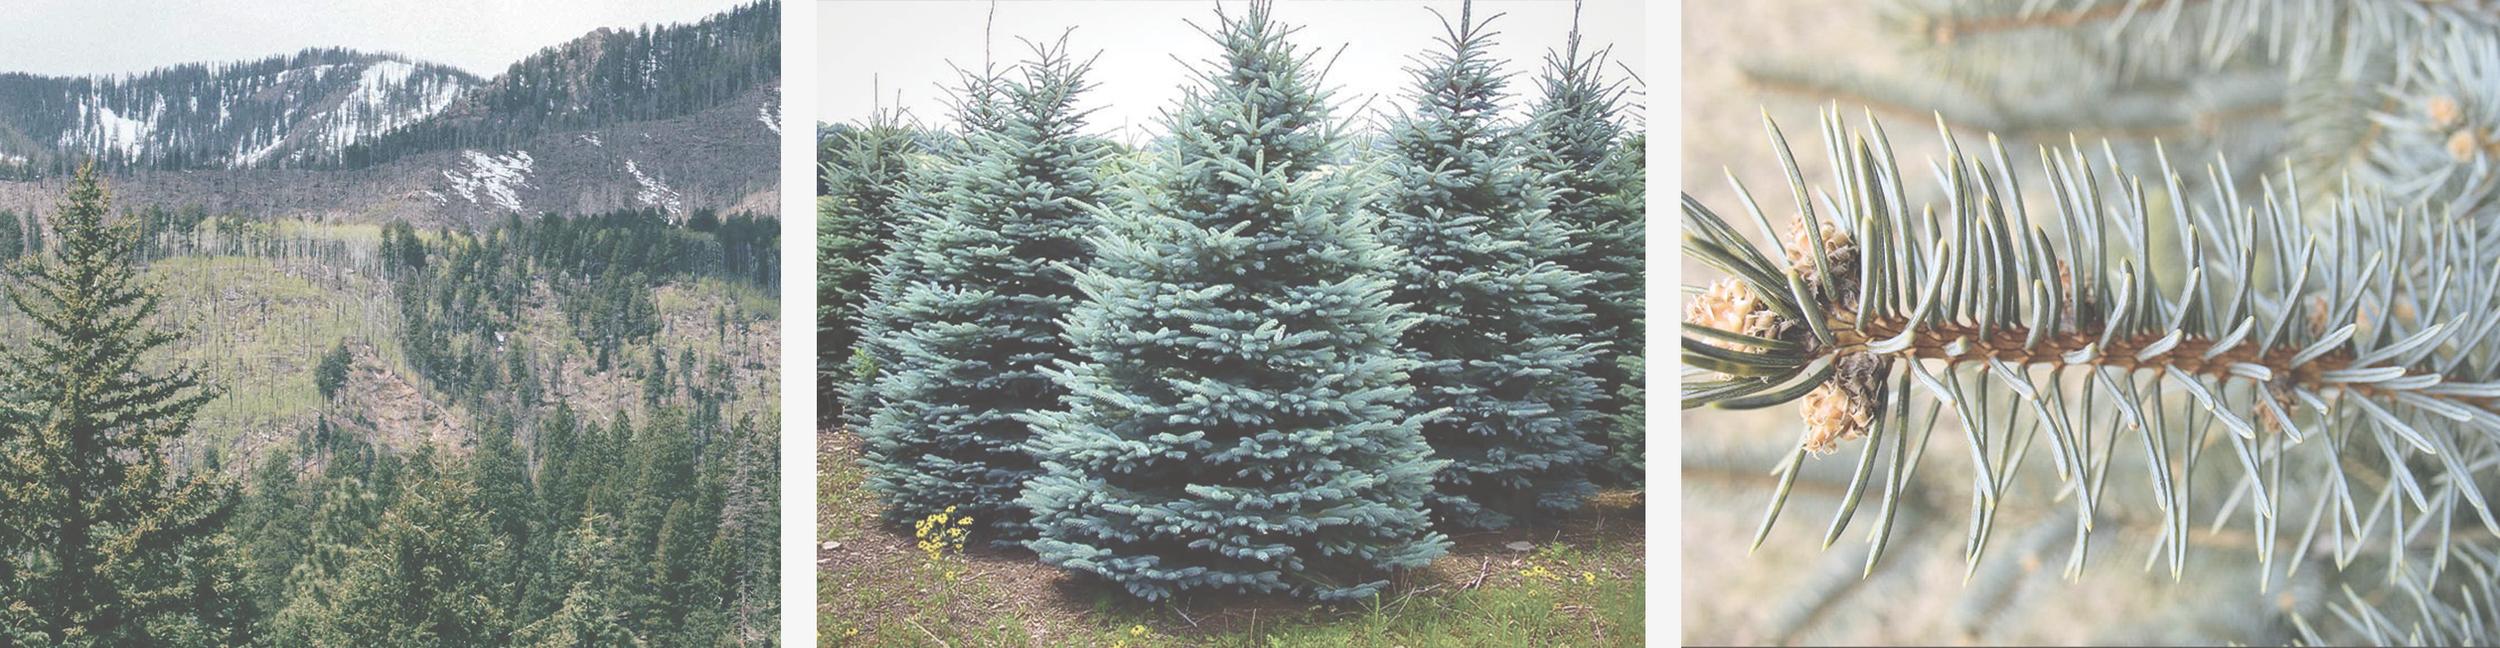 Blue Spruce | Picea Pungens